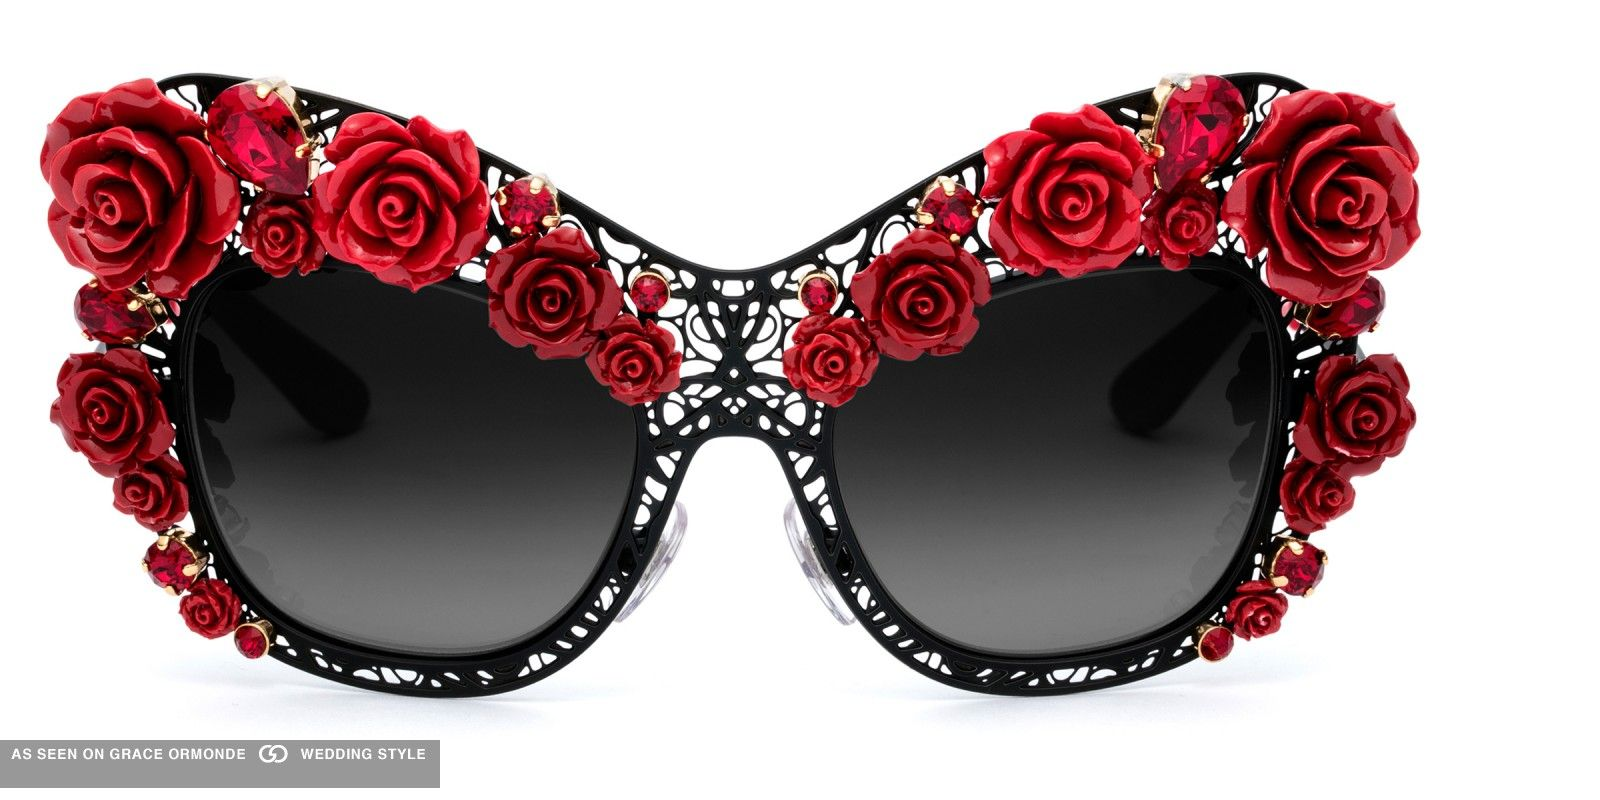 ae7cc7cf406 dolce and gabbana sunglasses red roses black frame